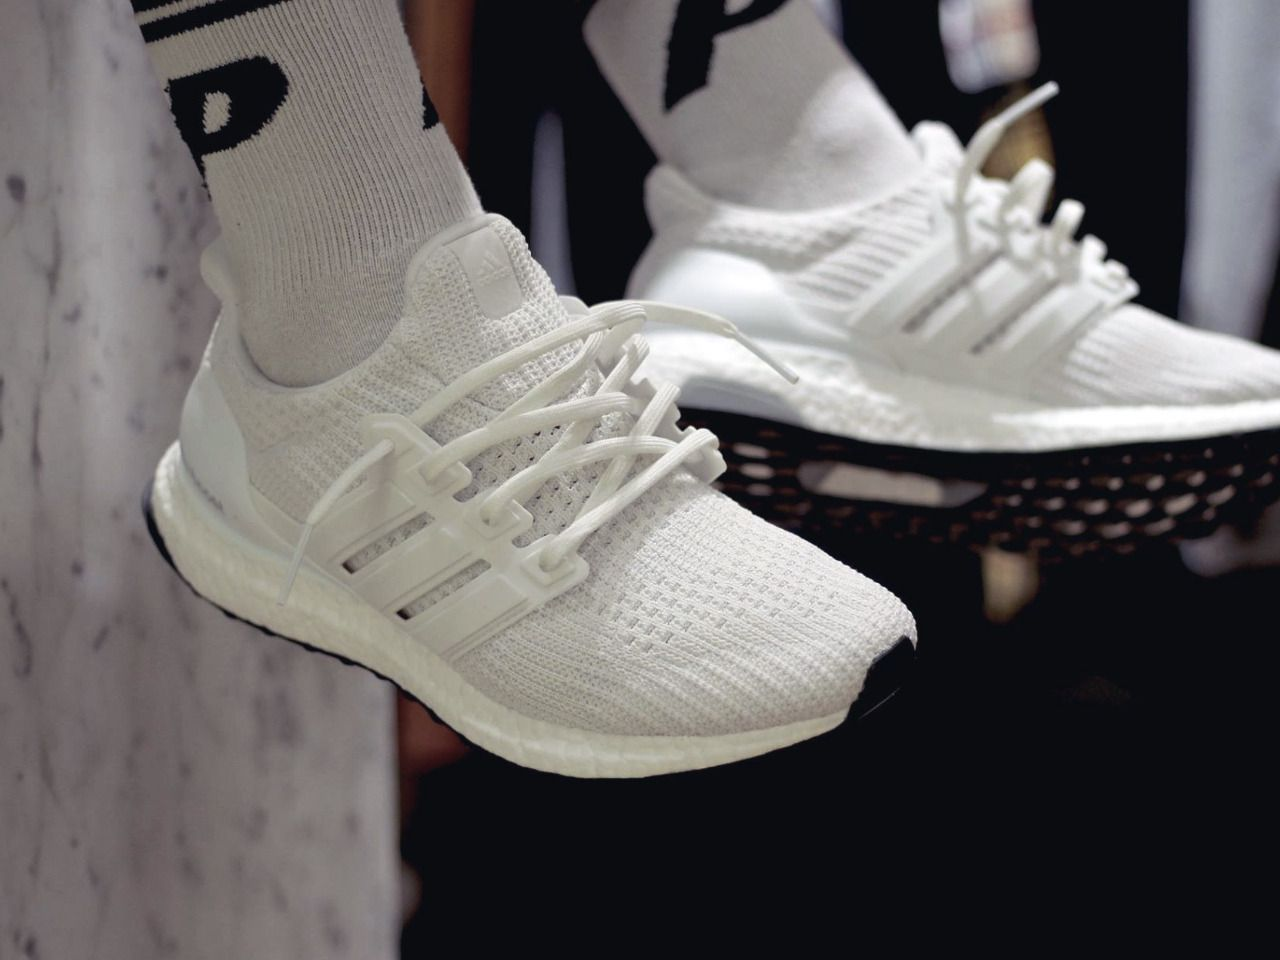 c42fdc1241495 Adidas Ultra Boost 4.0 - Triple White - 2017 by Cerje Jack-l Buy  viaGlamour